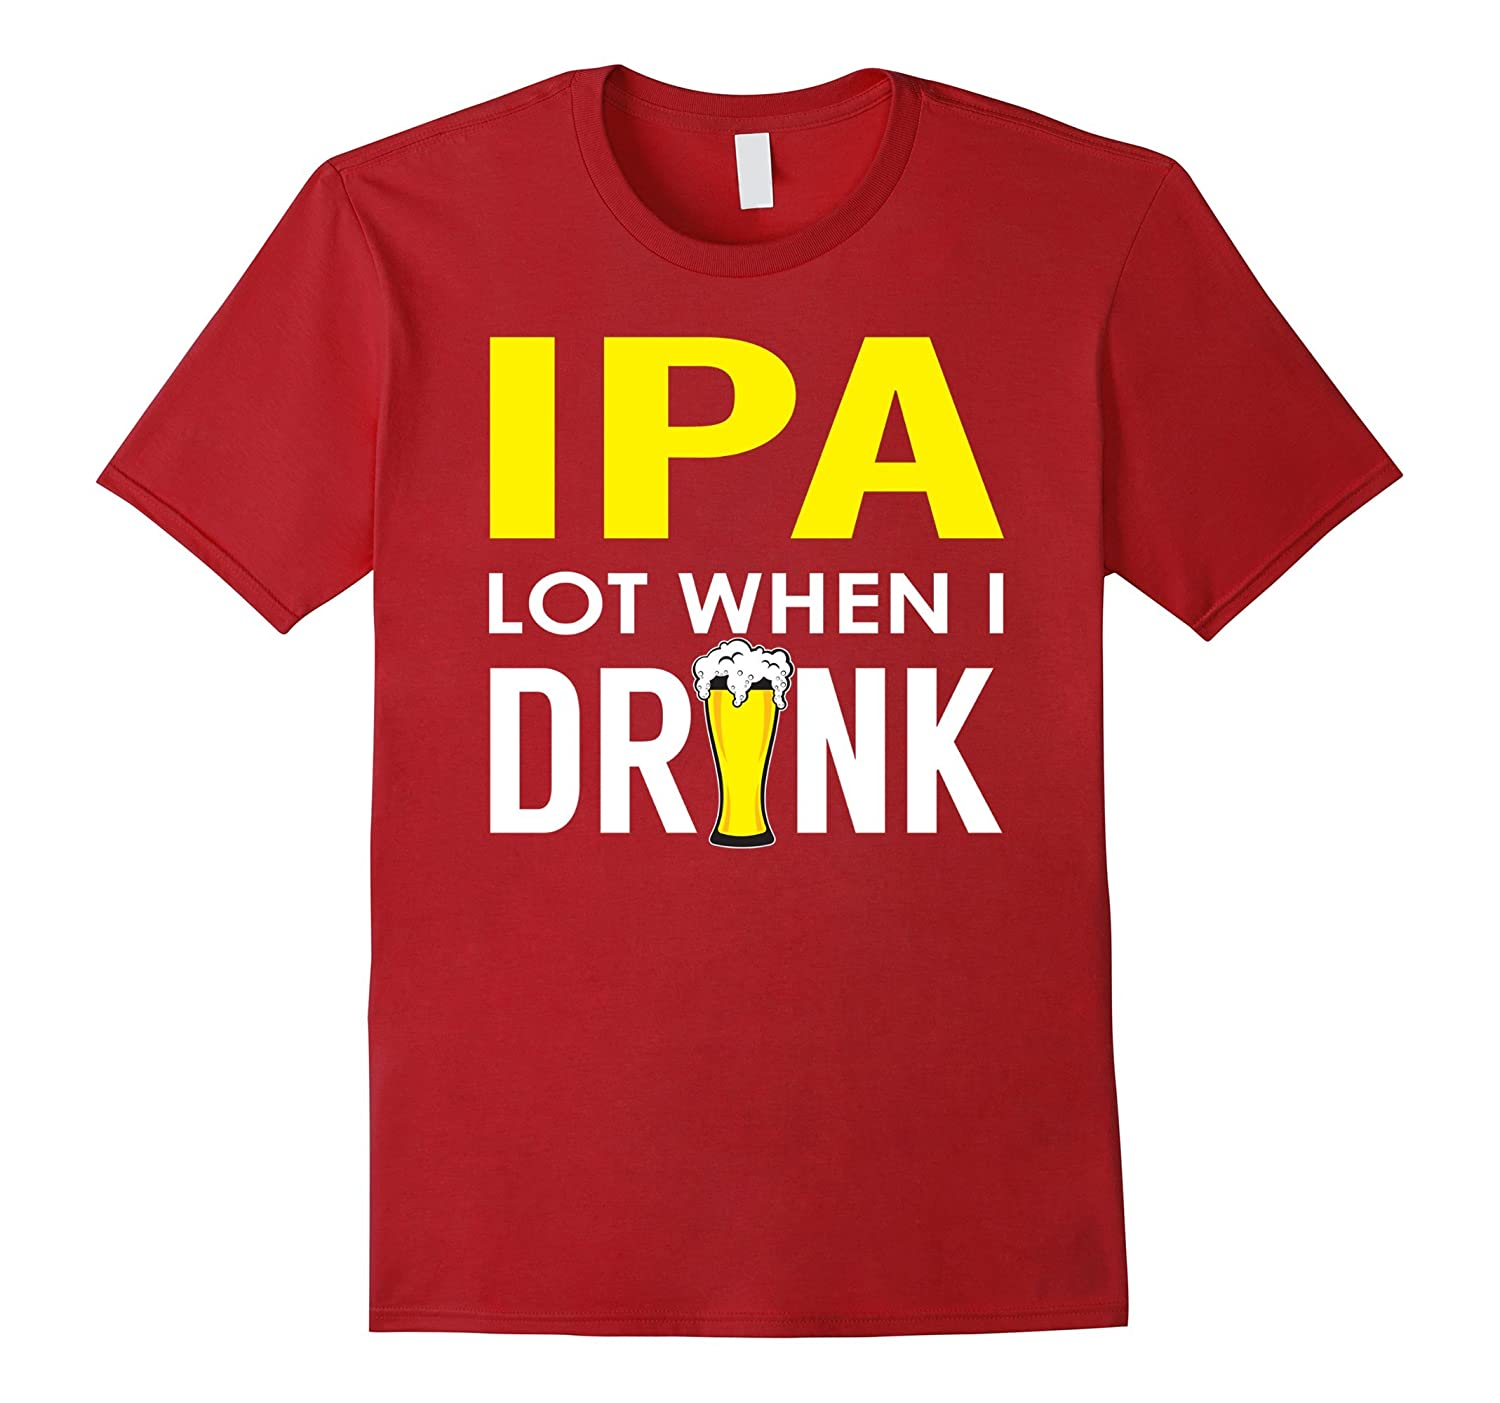 Ipa lot when i drink funny drinking shirt brewing beer for Funny craft beer shirts